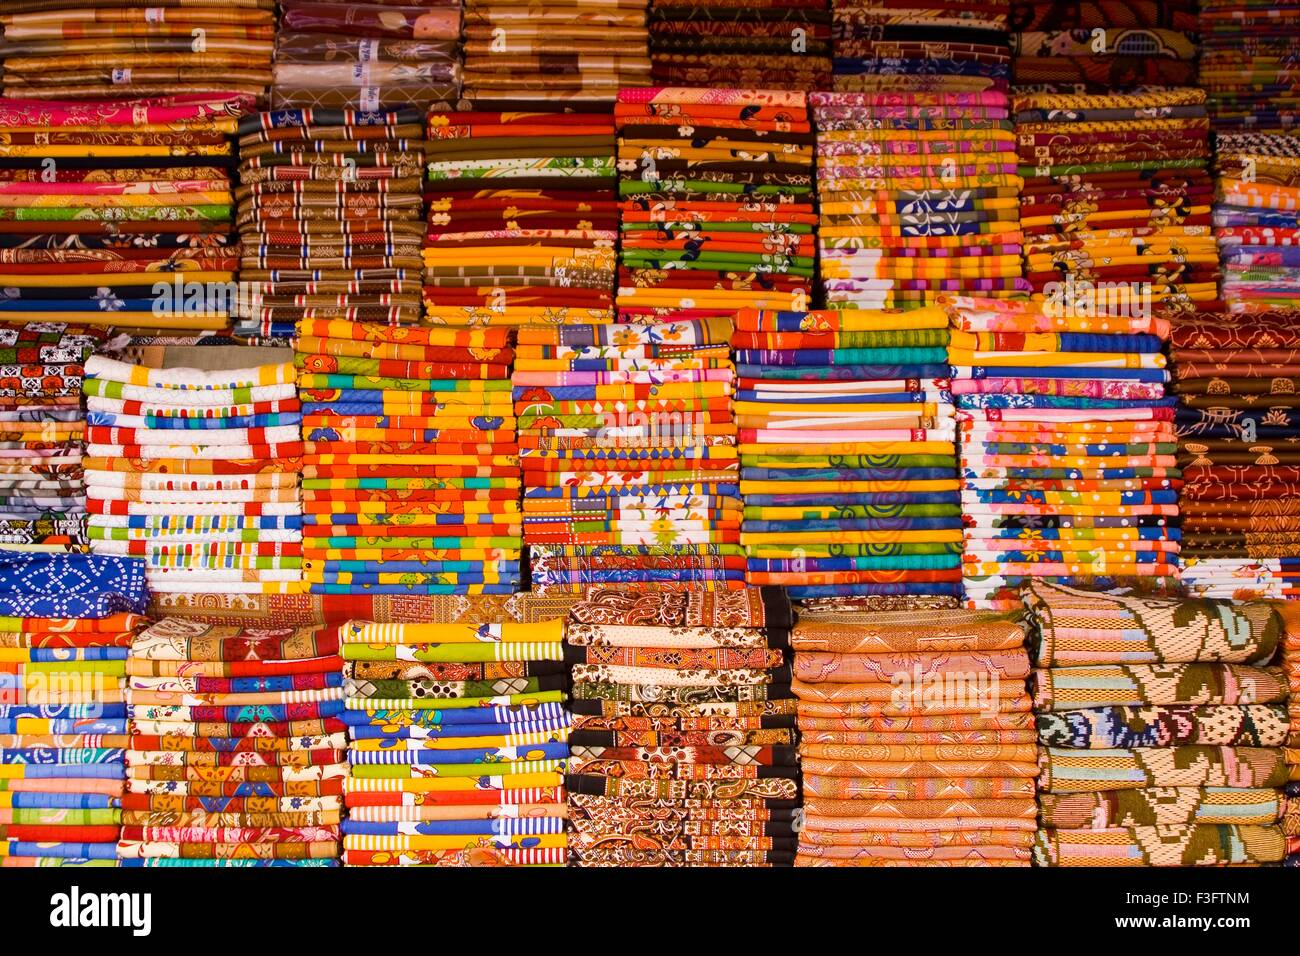 Bed Sheet Shop ; Allahabad ; Uttar Pradesh ; India